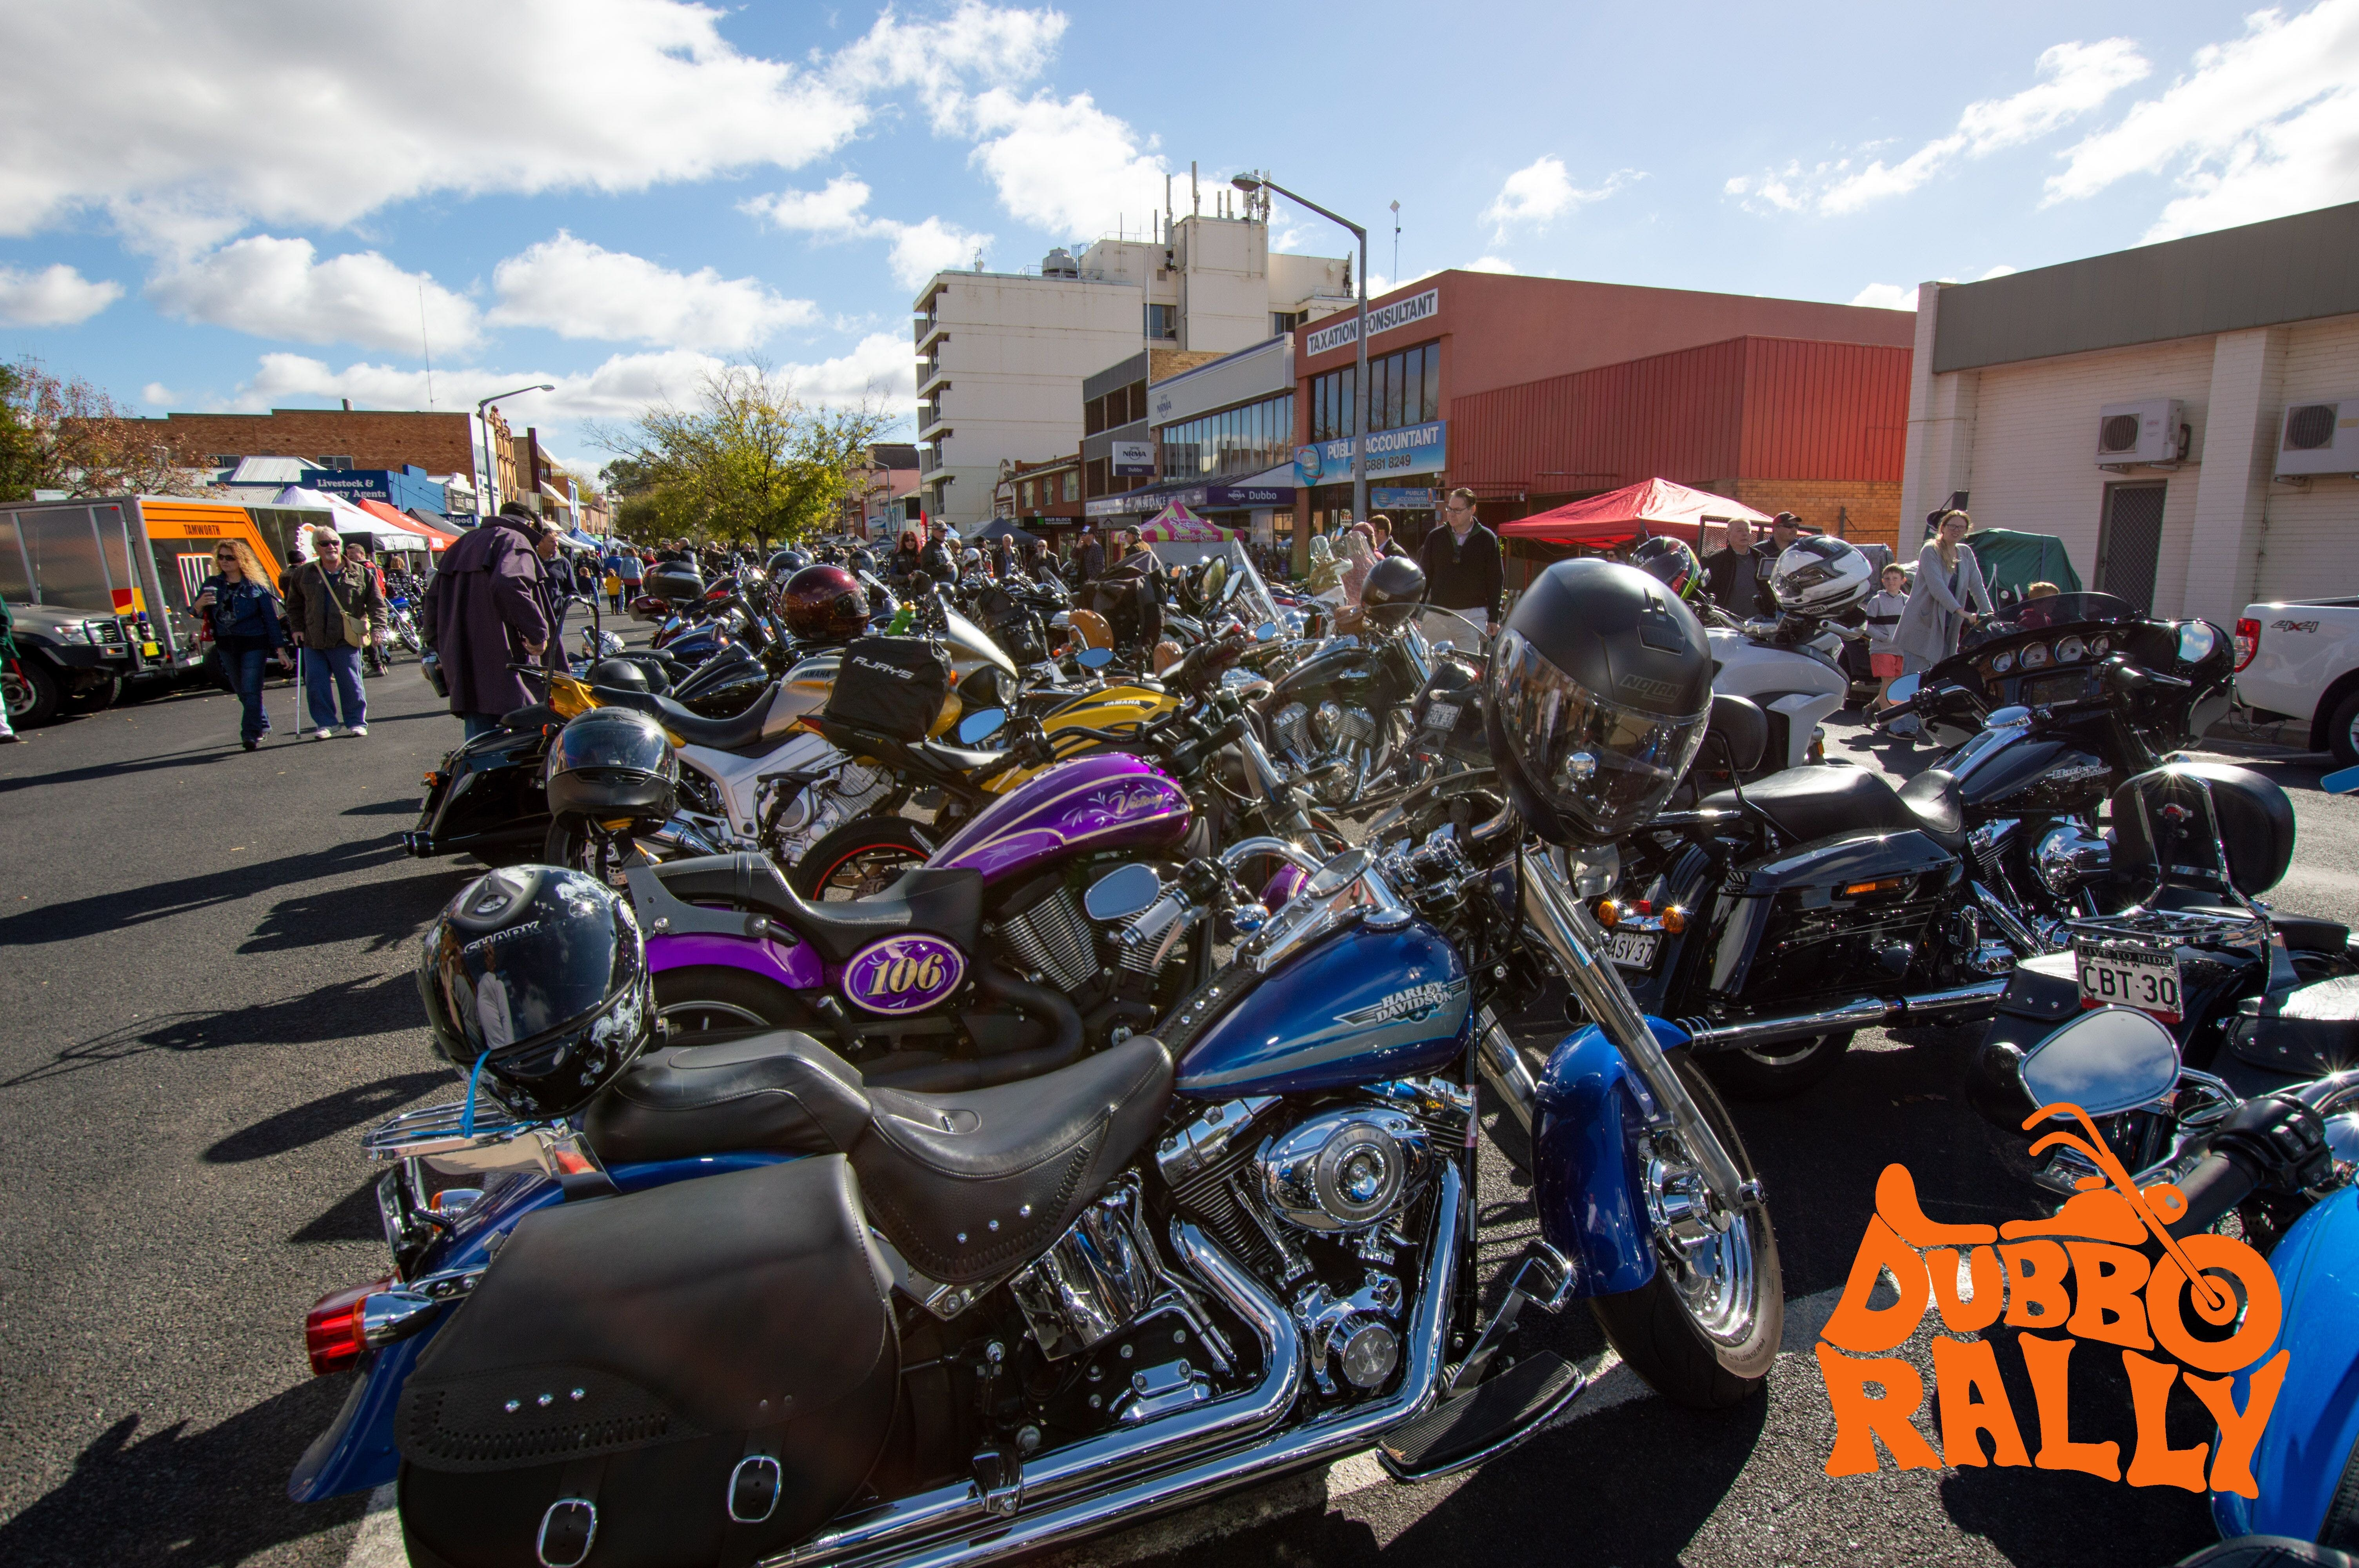 Dubbo Motor Bike Rally - Accommodation Perth